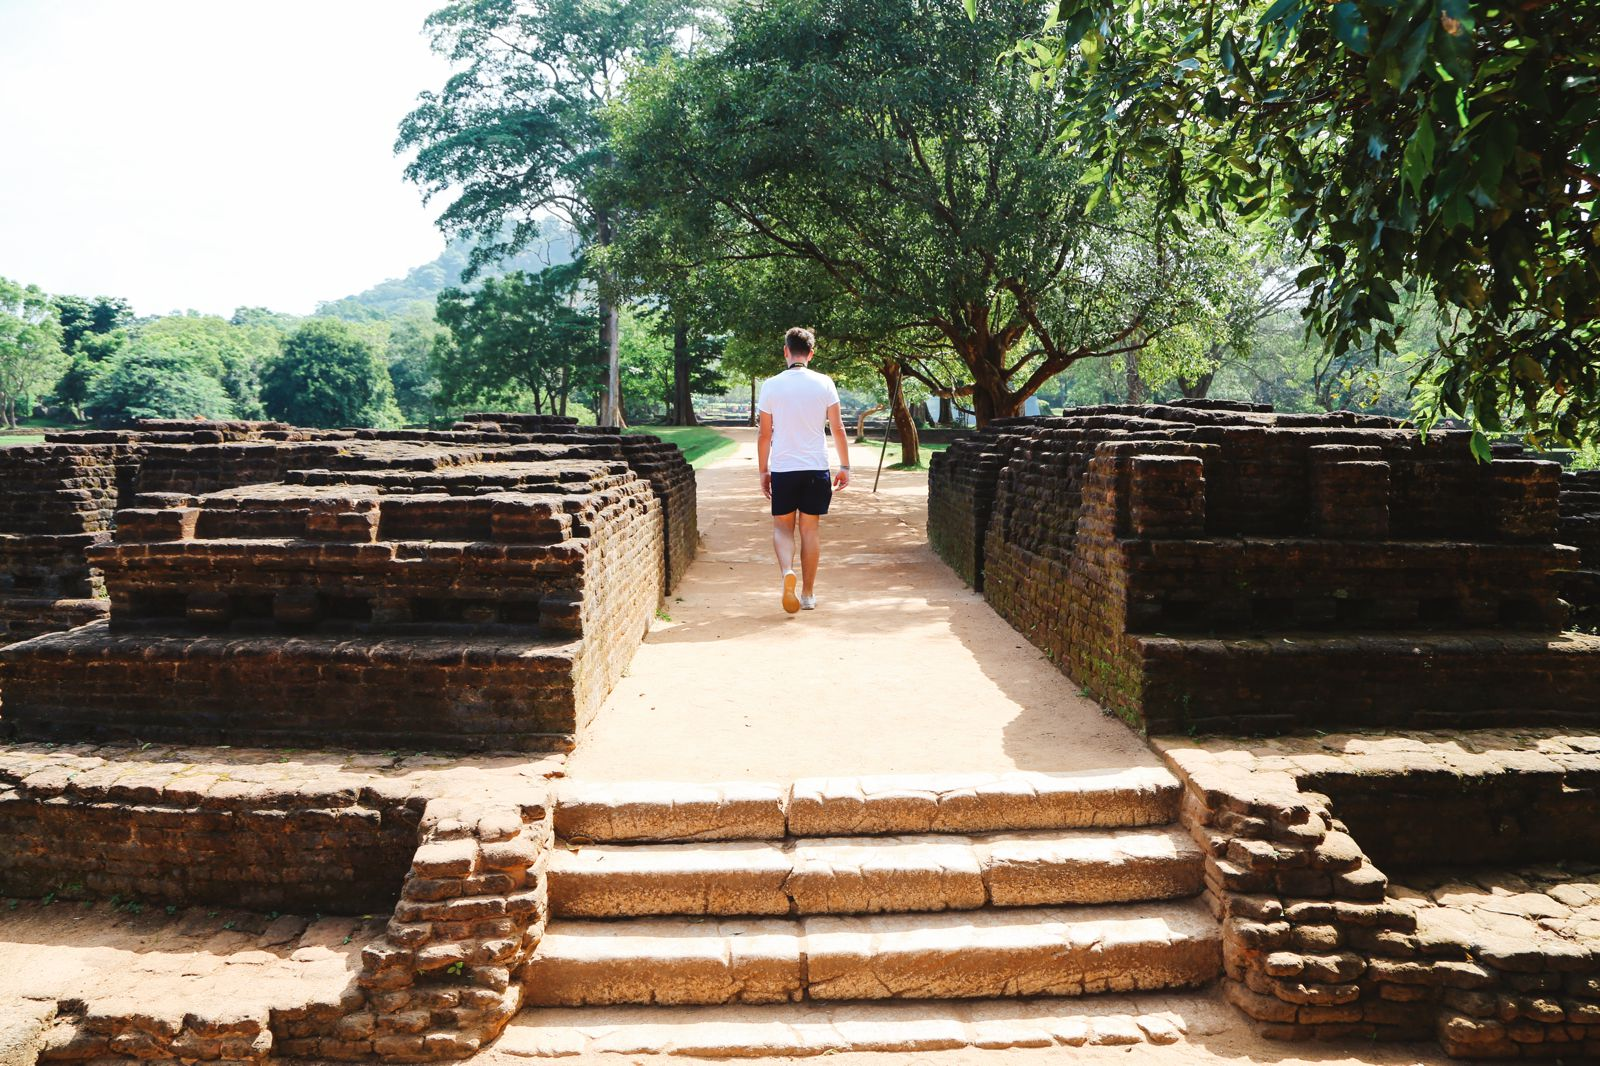 The Complete Guide To Climbing Sri Lanka's UNESCO World Heritage Site Of Sigiriya - Lion Rock (6)